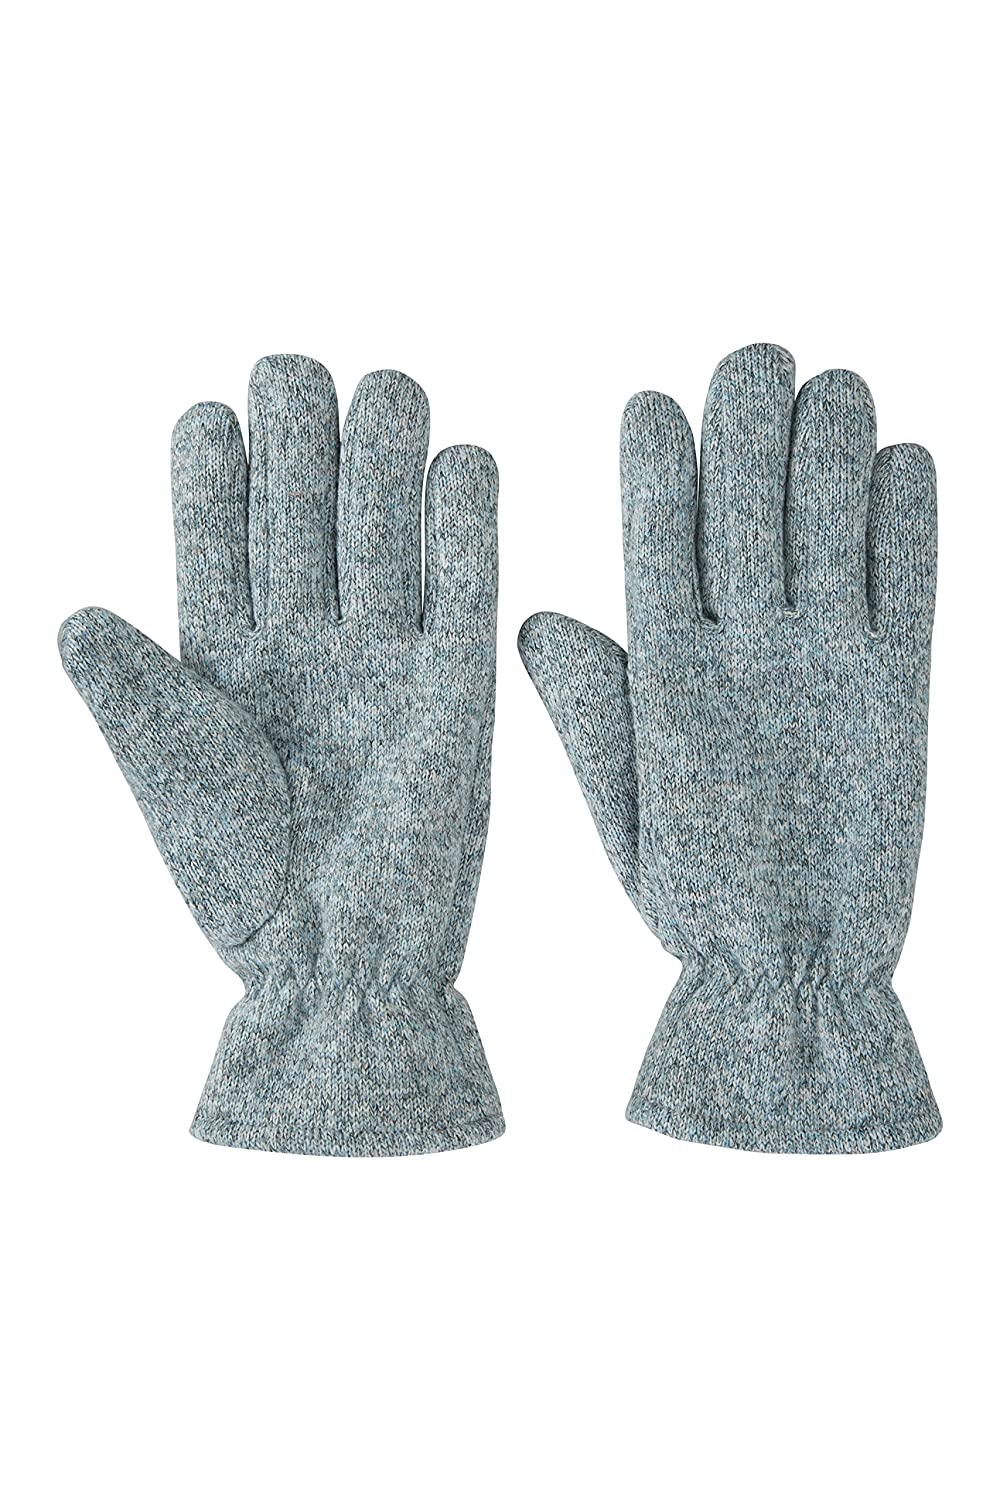 Mountain Warehouse Nevis Women's Fleece Gloves - Lightweight, Soft & Cosy Fleece Fabric with Elasticated Cuffs - Ideal for Travelling & Everyday Wear in Winter Grey 024753024001